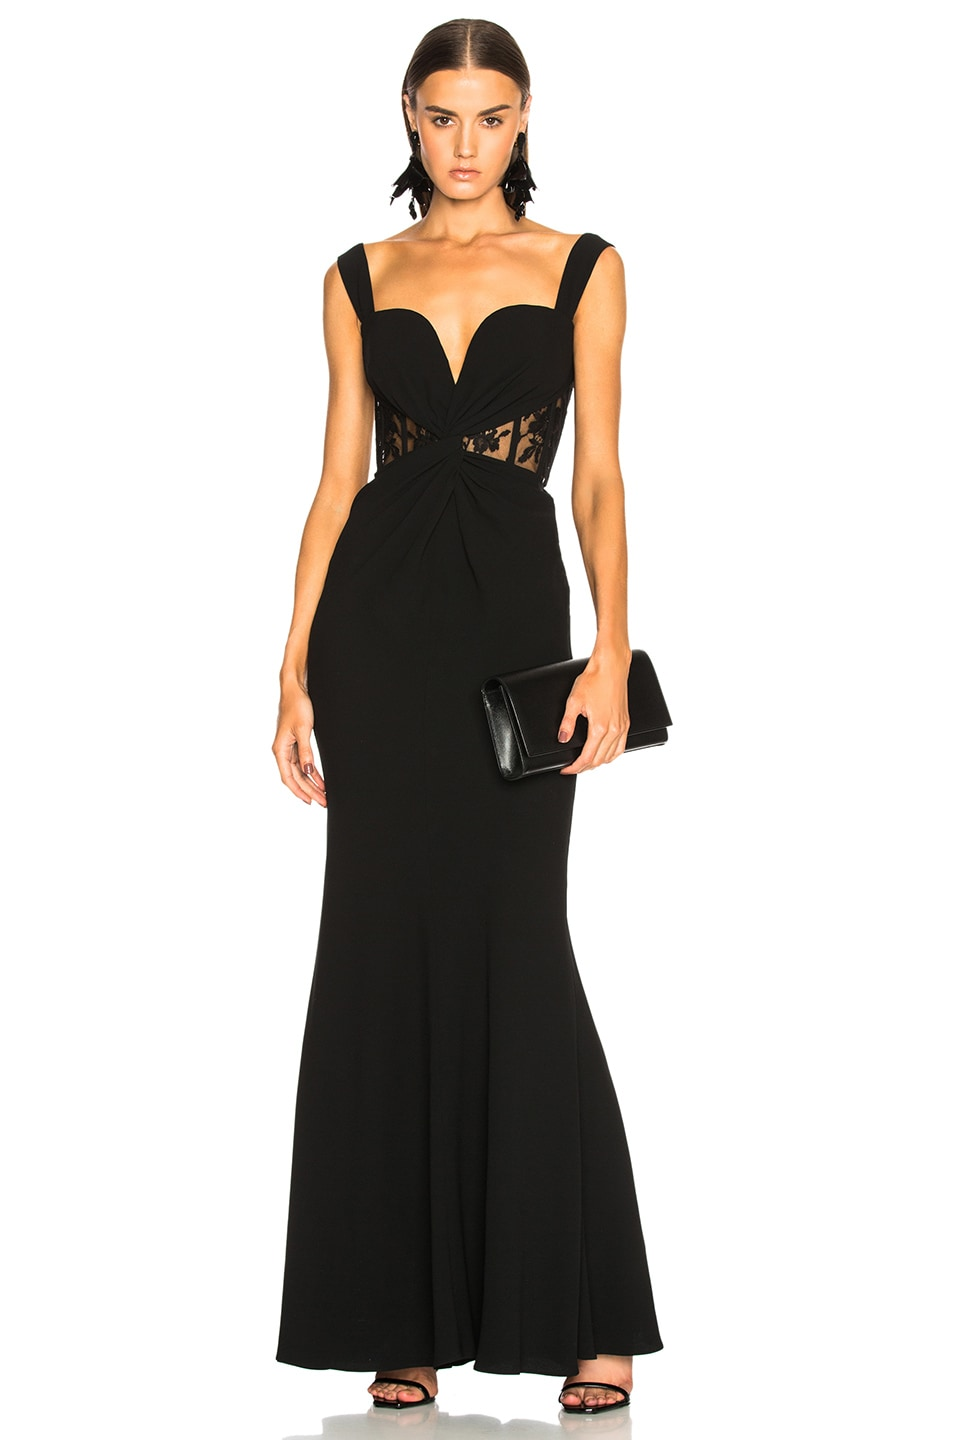 295385aedb390 Image 1 of Alexander McQueen Sleeveless Bustier Gown in Black